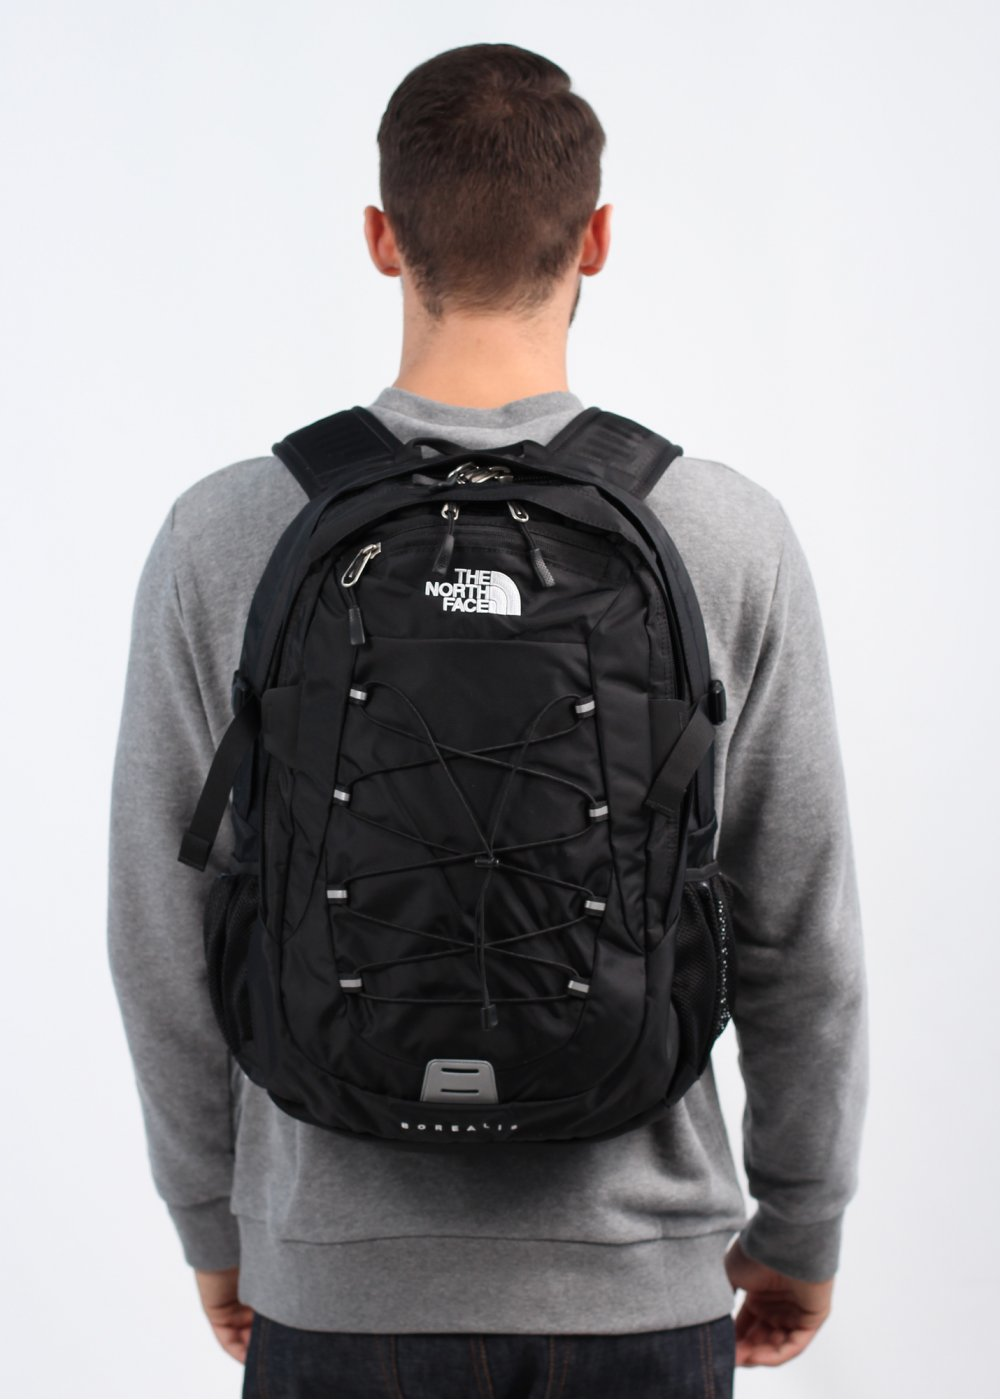 23b5a239b Black North Face Borealis Backpack Sale - CEAGESP